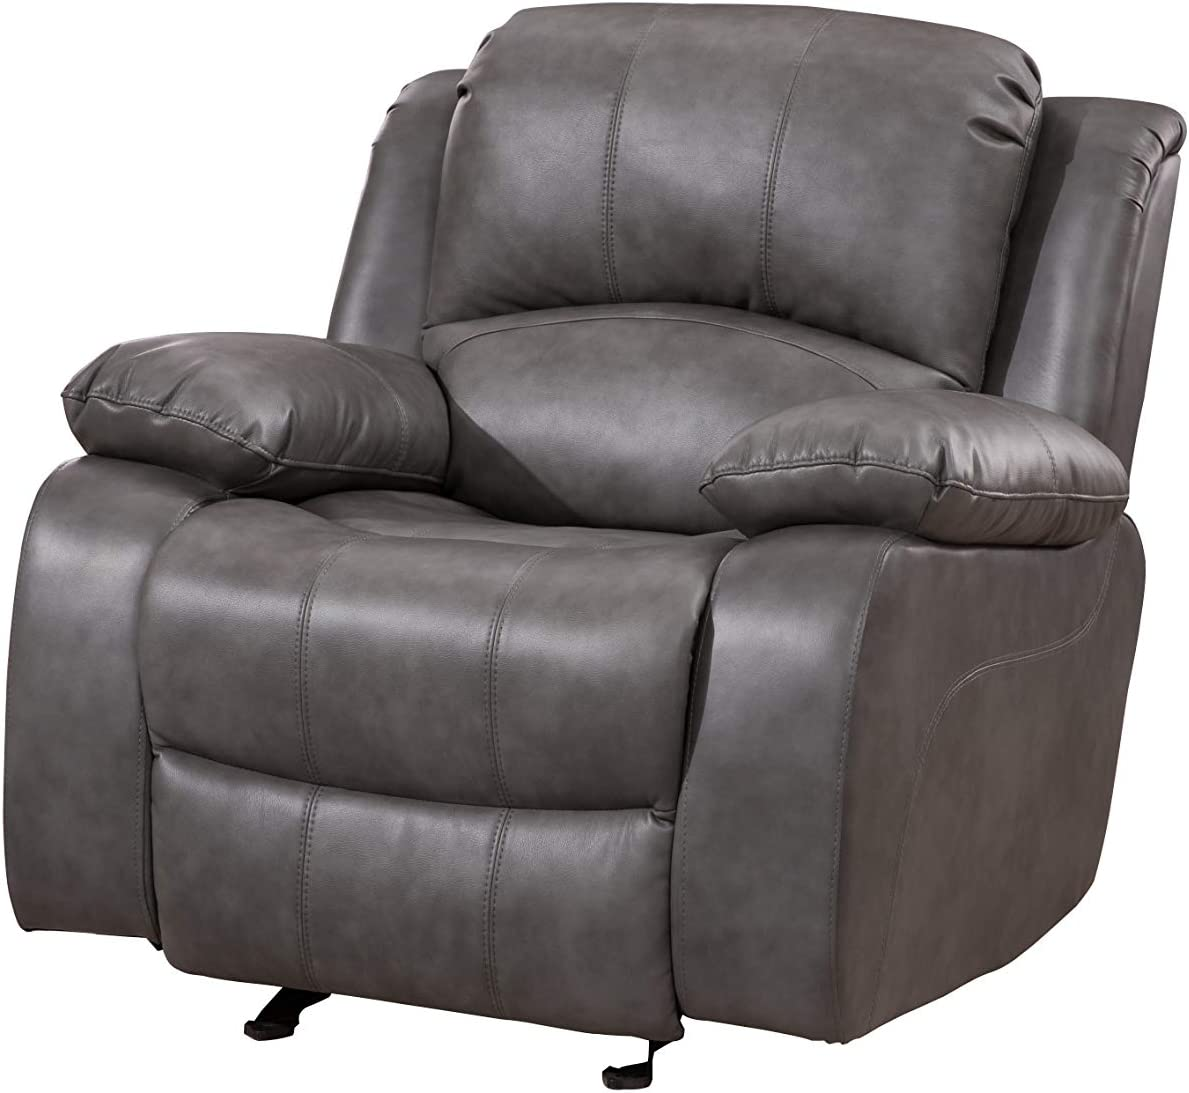 Betsy Furniture Bonded Leather Reclining Sofa Loveseat Glider Chair in Multiple Colors, 8018 (Grey, Glider Chair)